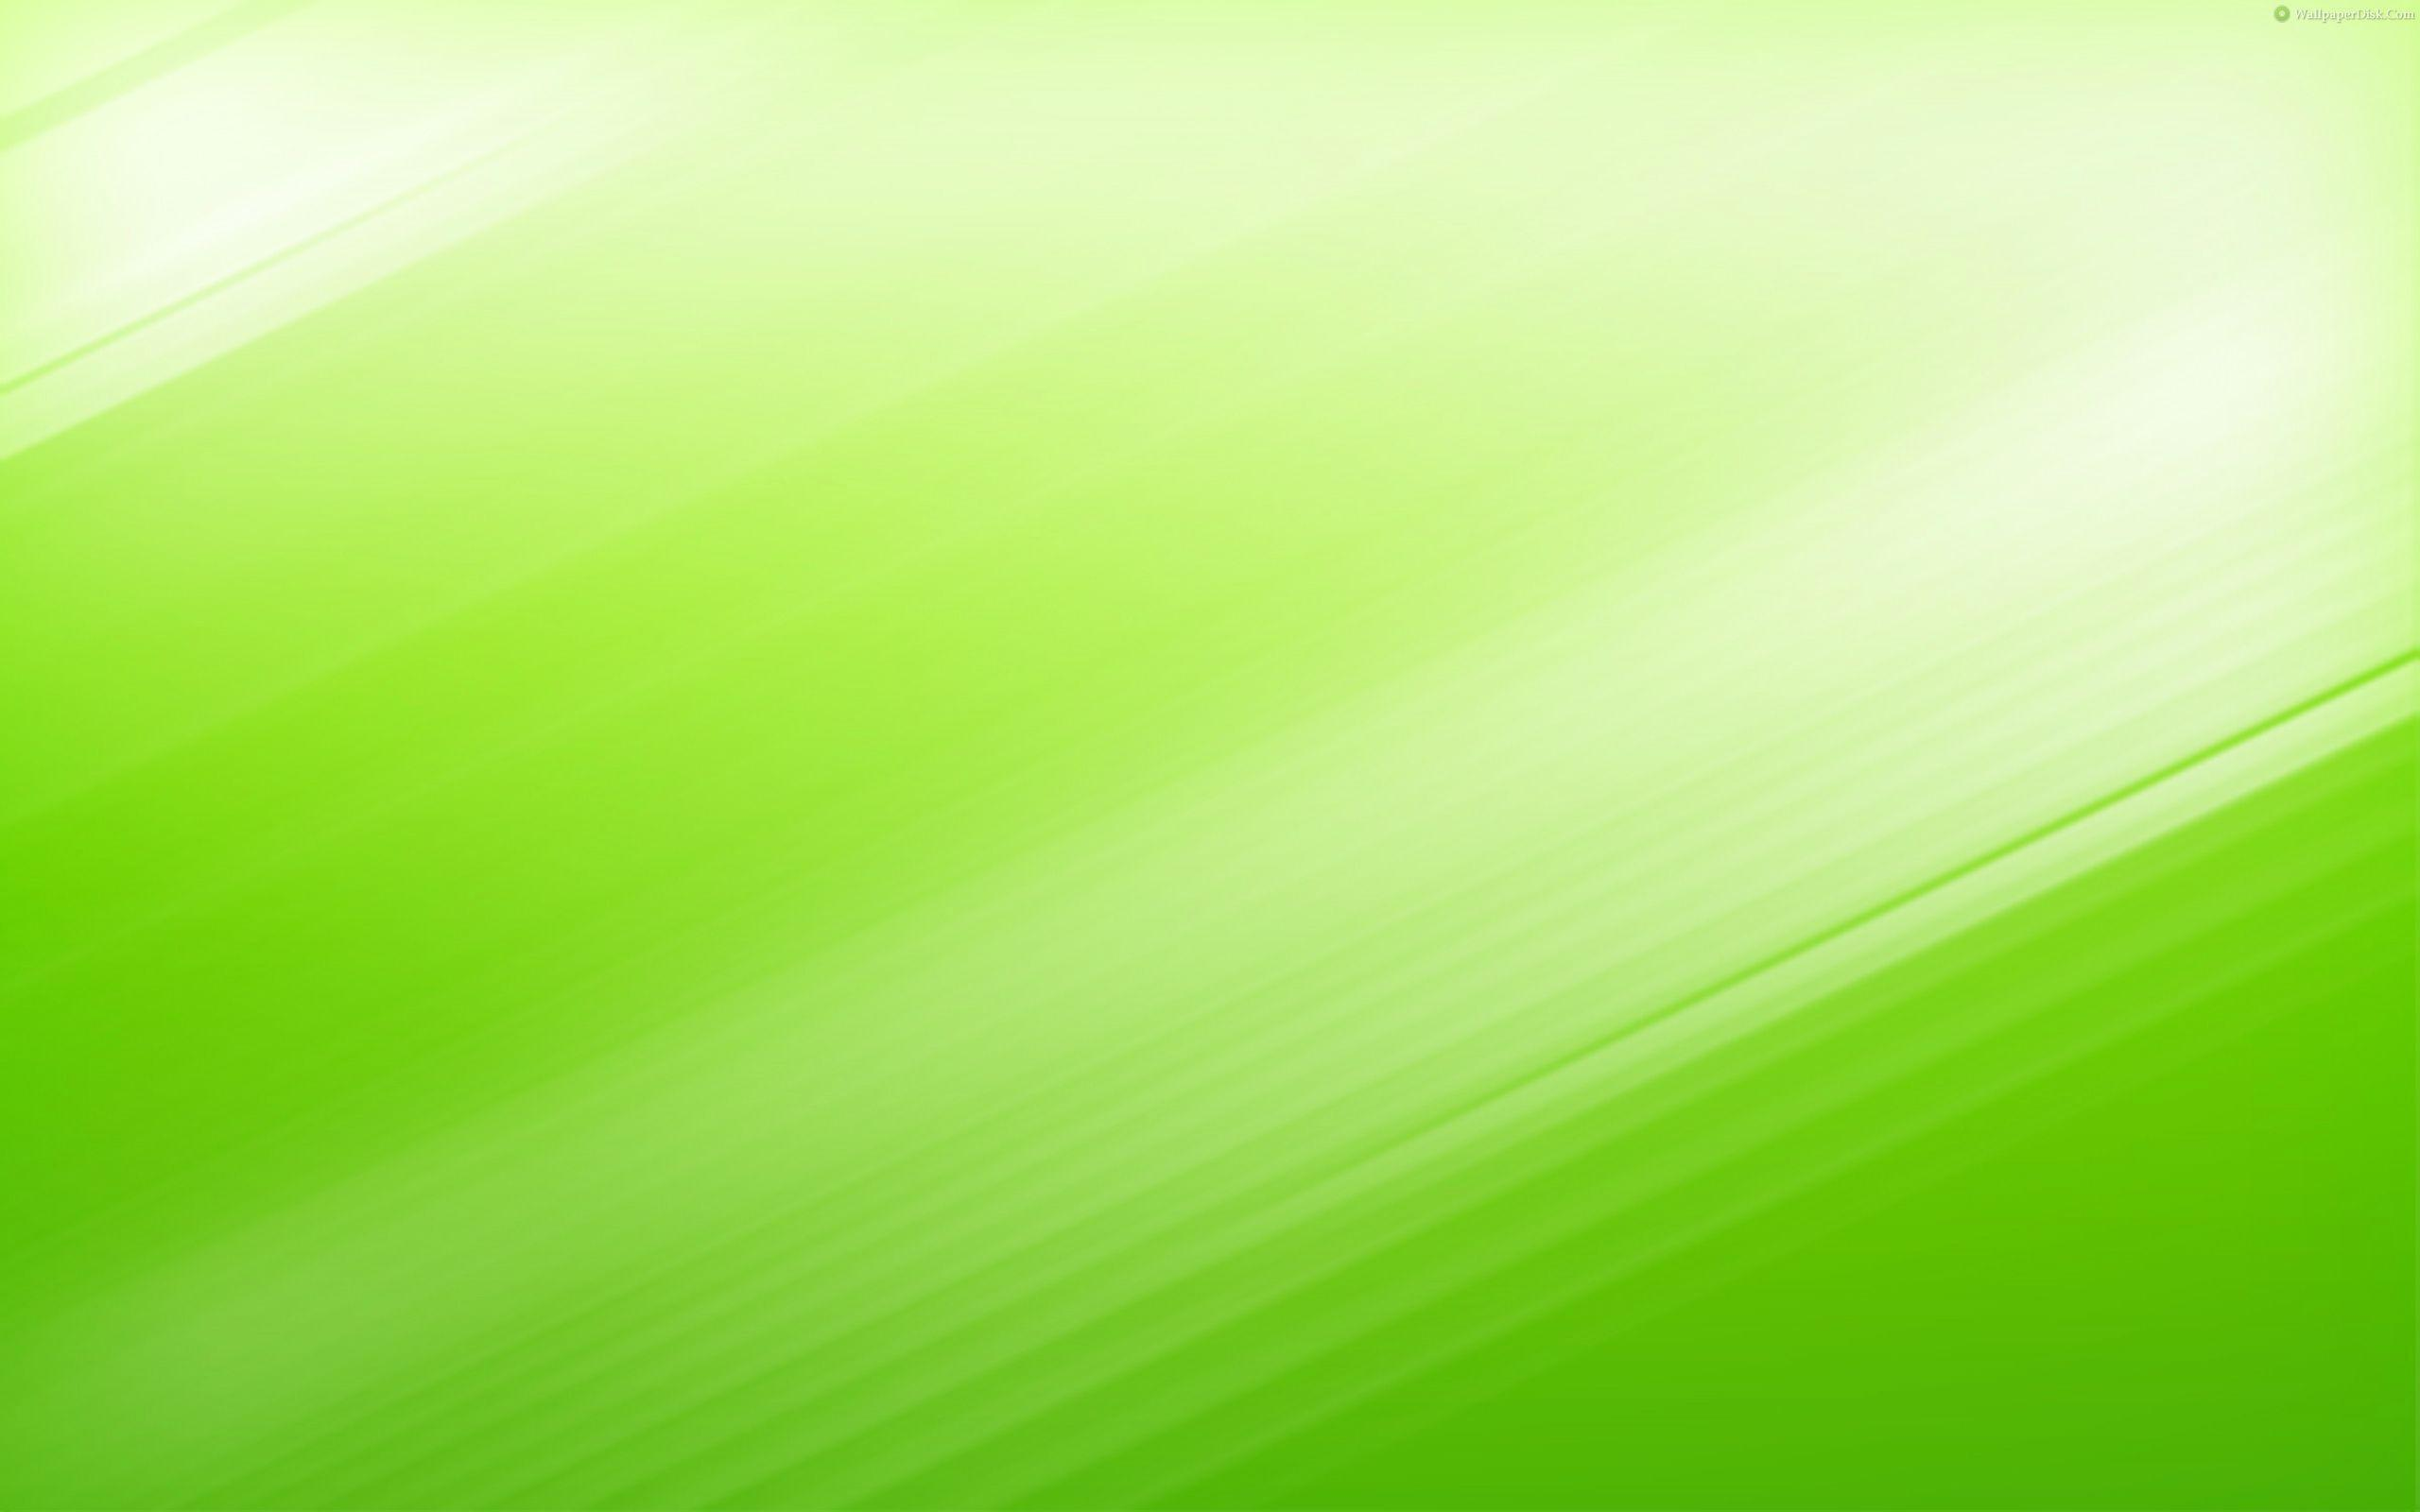 Green Backgrounds Image 2560x1600